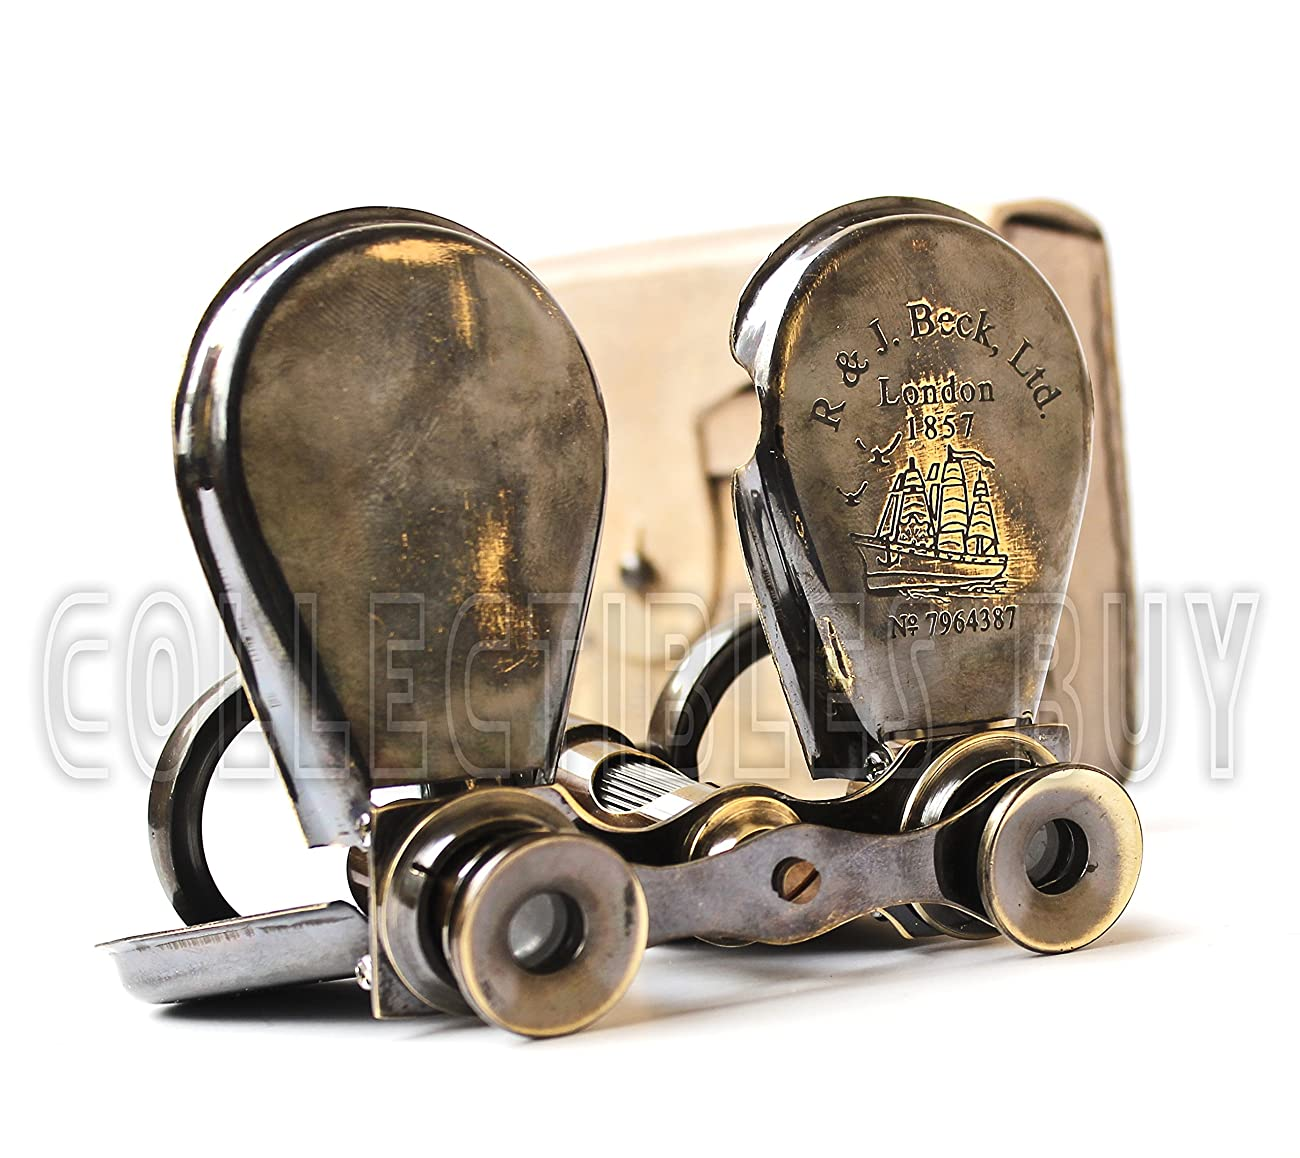 Classic Marine Spy Glass Antique London 1857 R & J Beck Brass Binocular Collectibles Gift 1